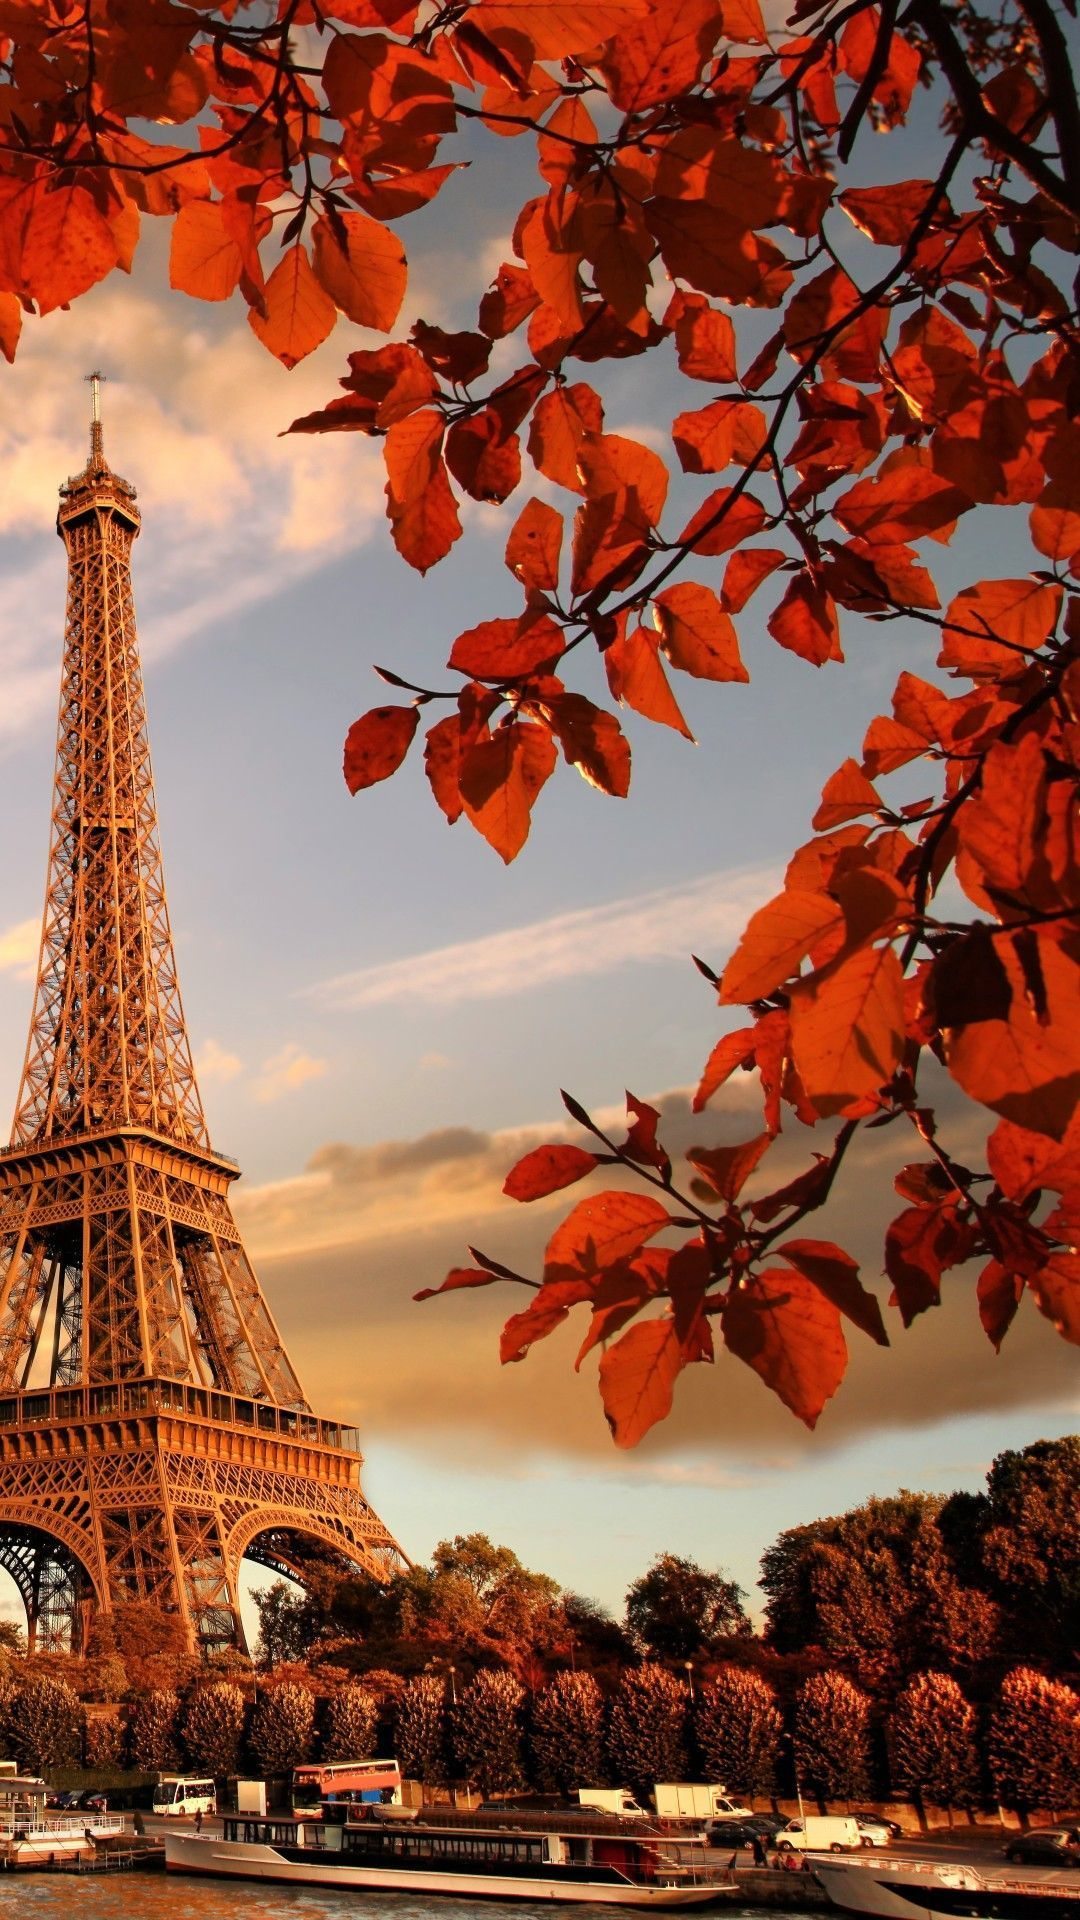 Wallpaper with eiffel tower